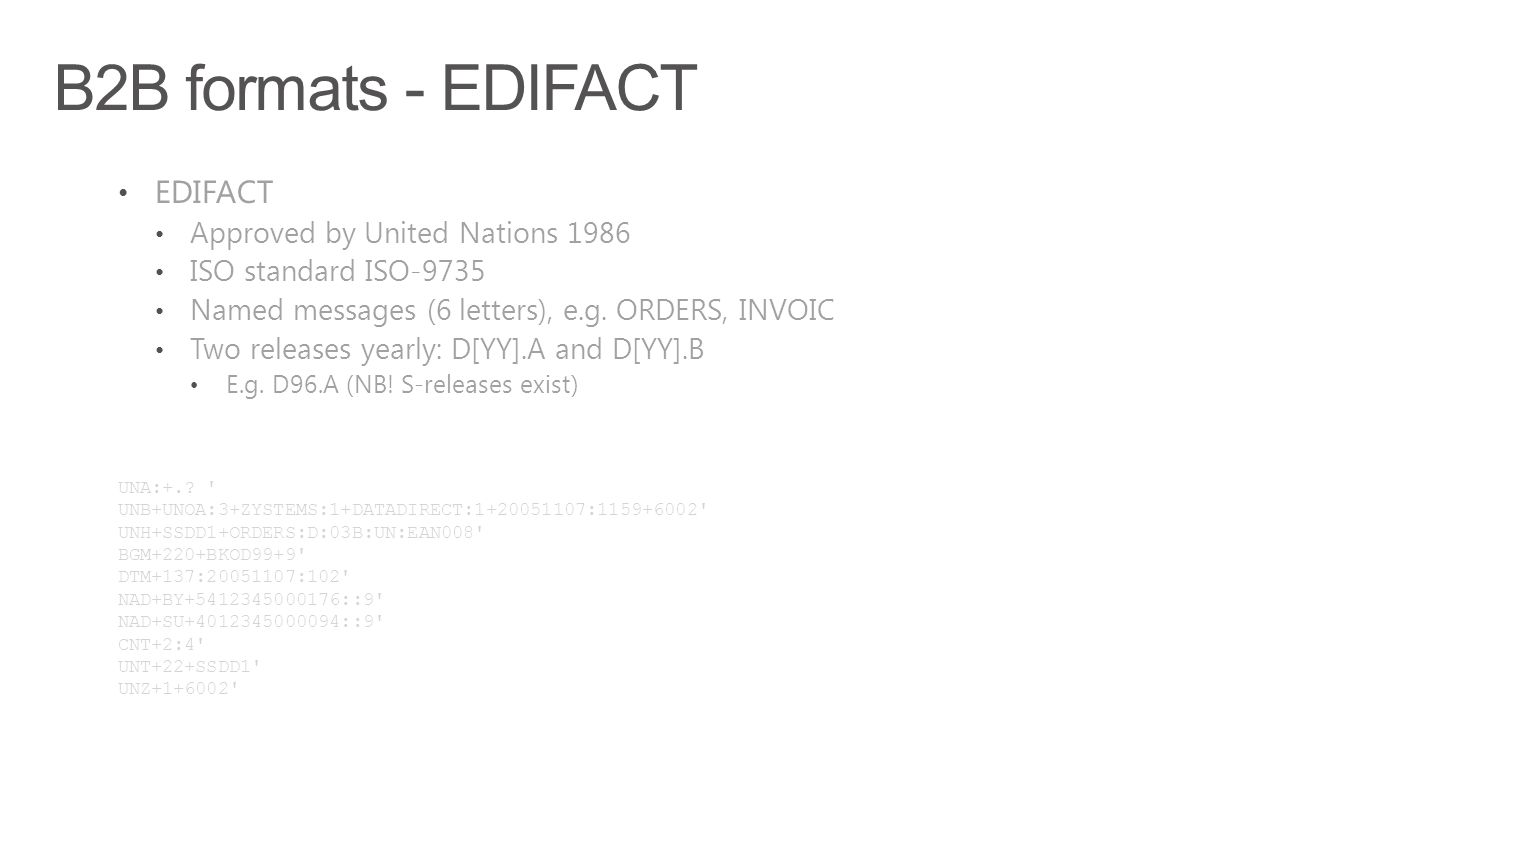 B2B formats - EDIFACT EDIFACT Approved by United Nations 1986